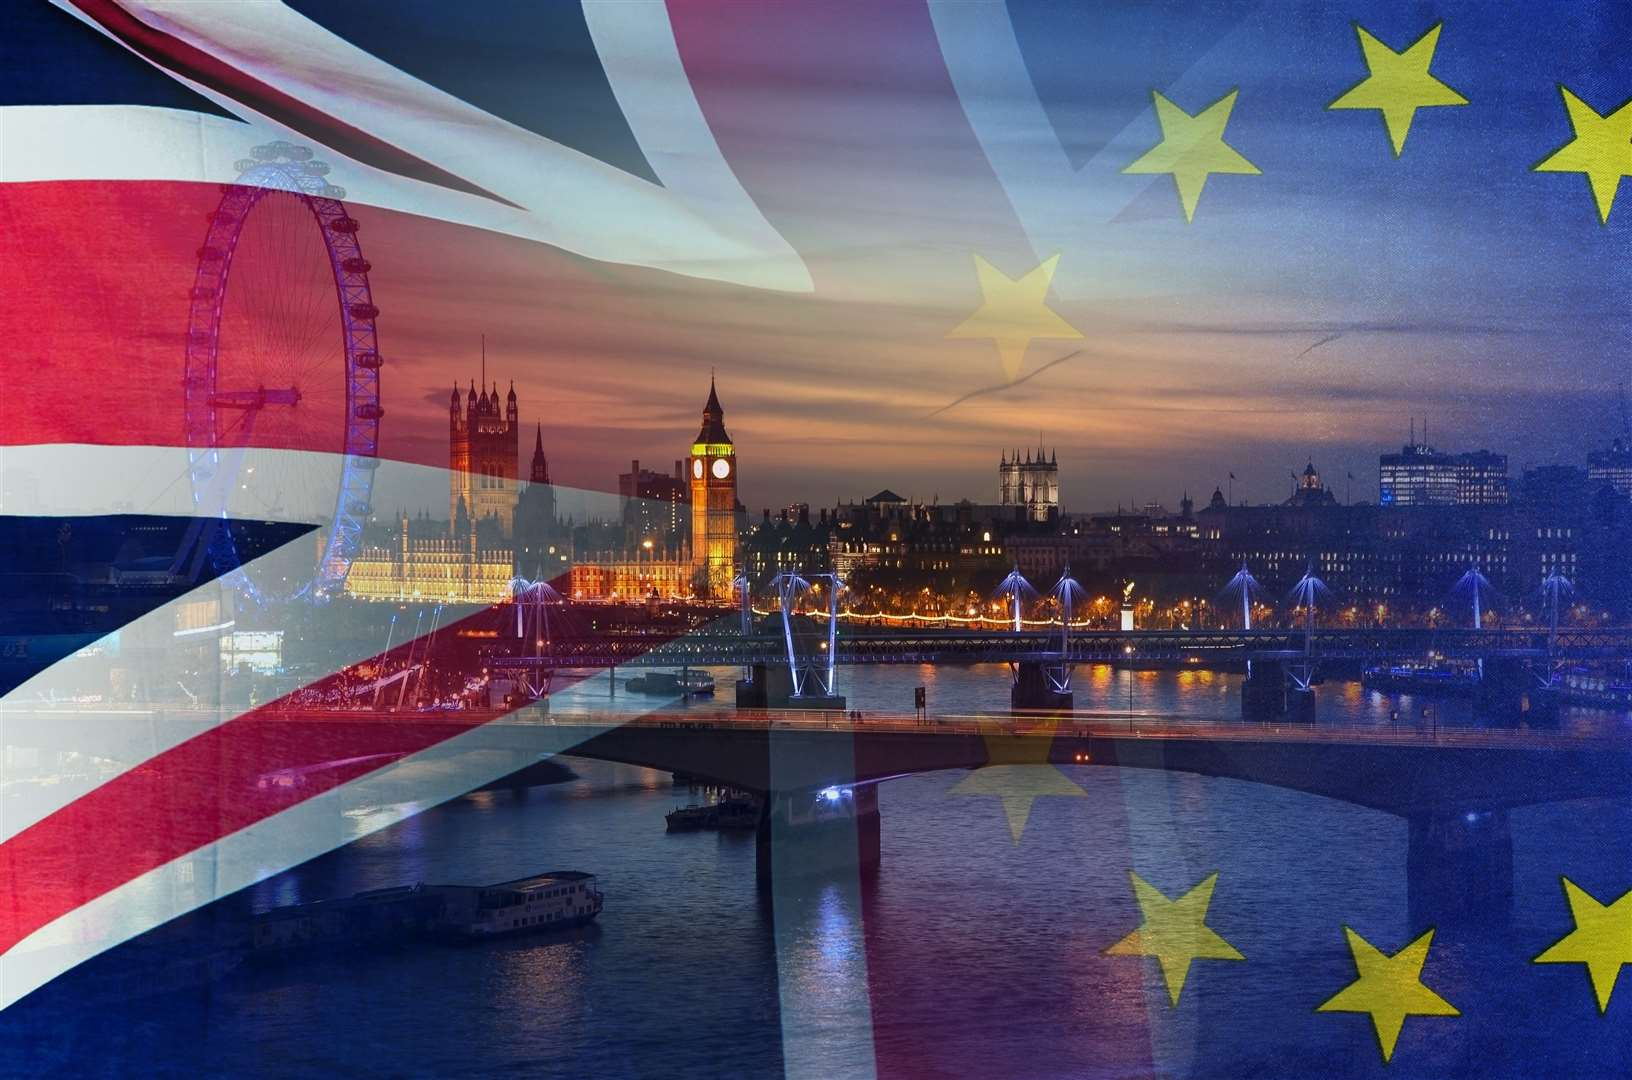 BREXIT concept image of London image and UK and EU flags overlaid symbolising agreement and deal being processed (19439484)